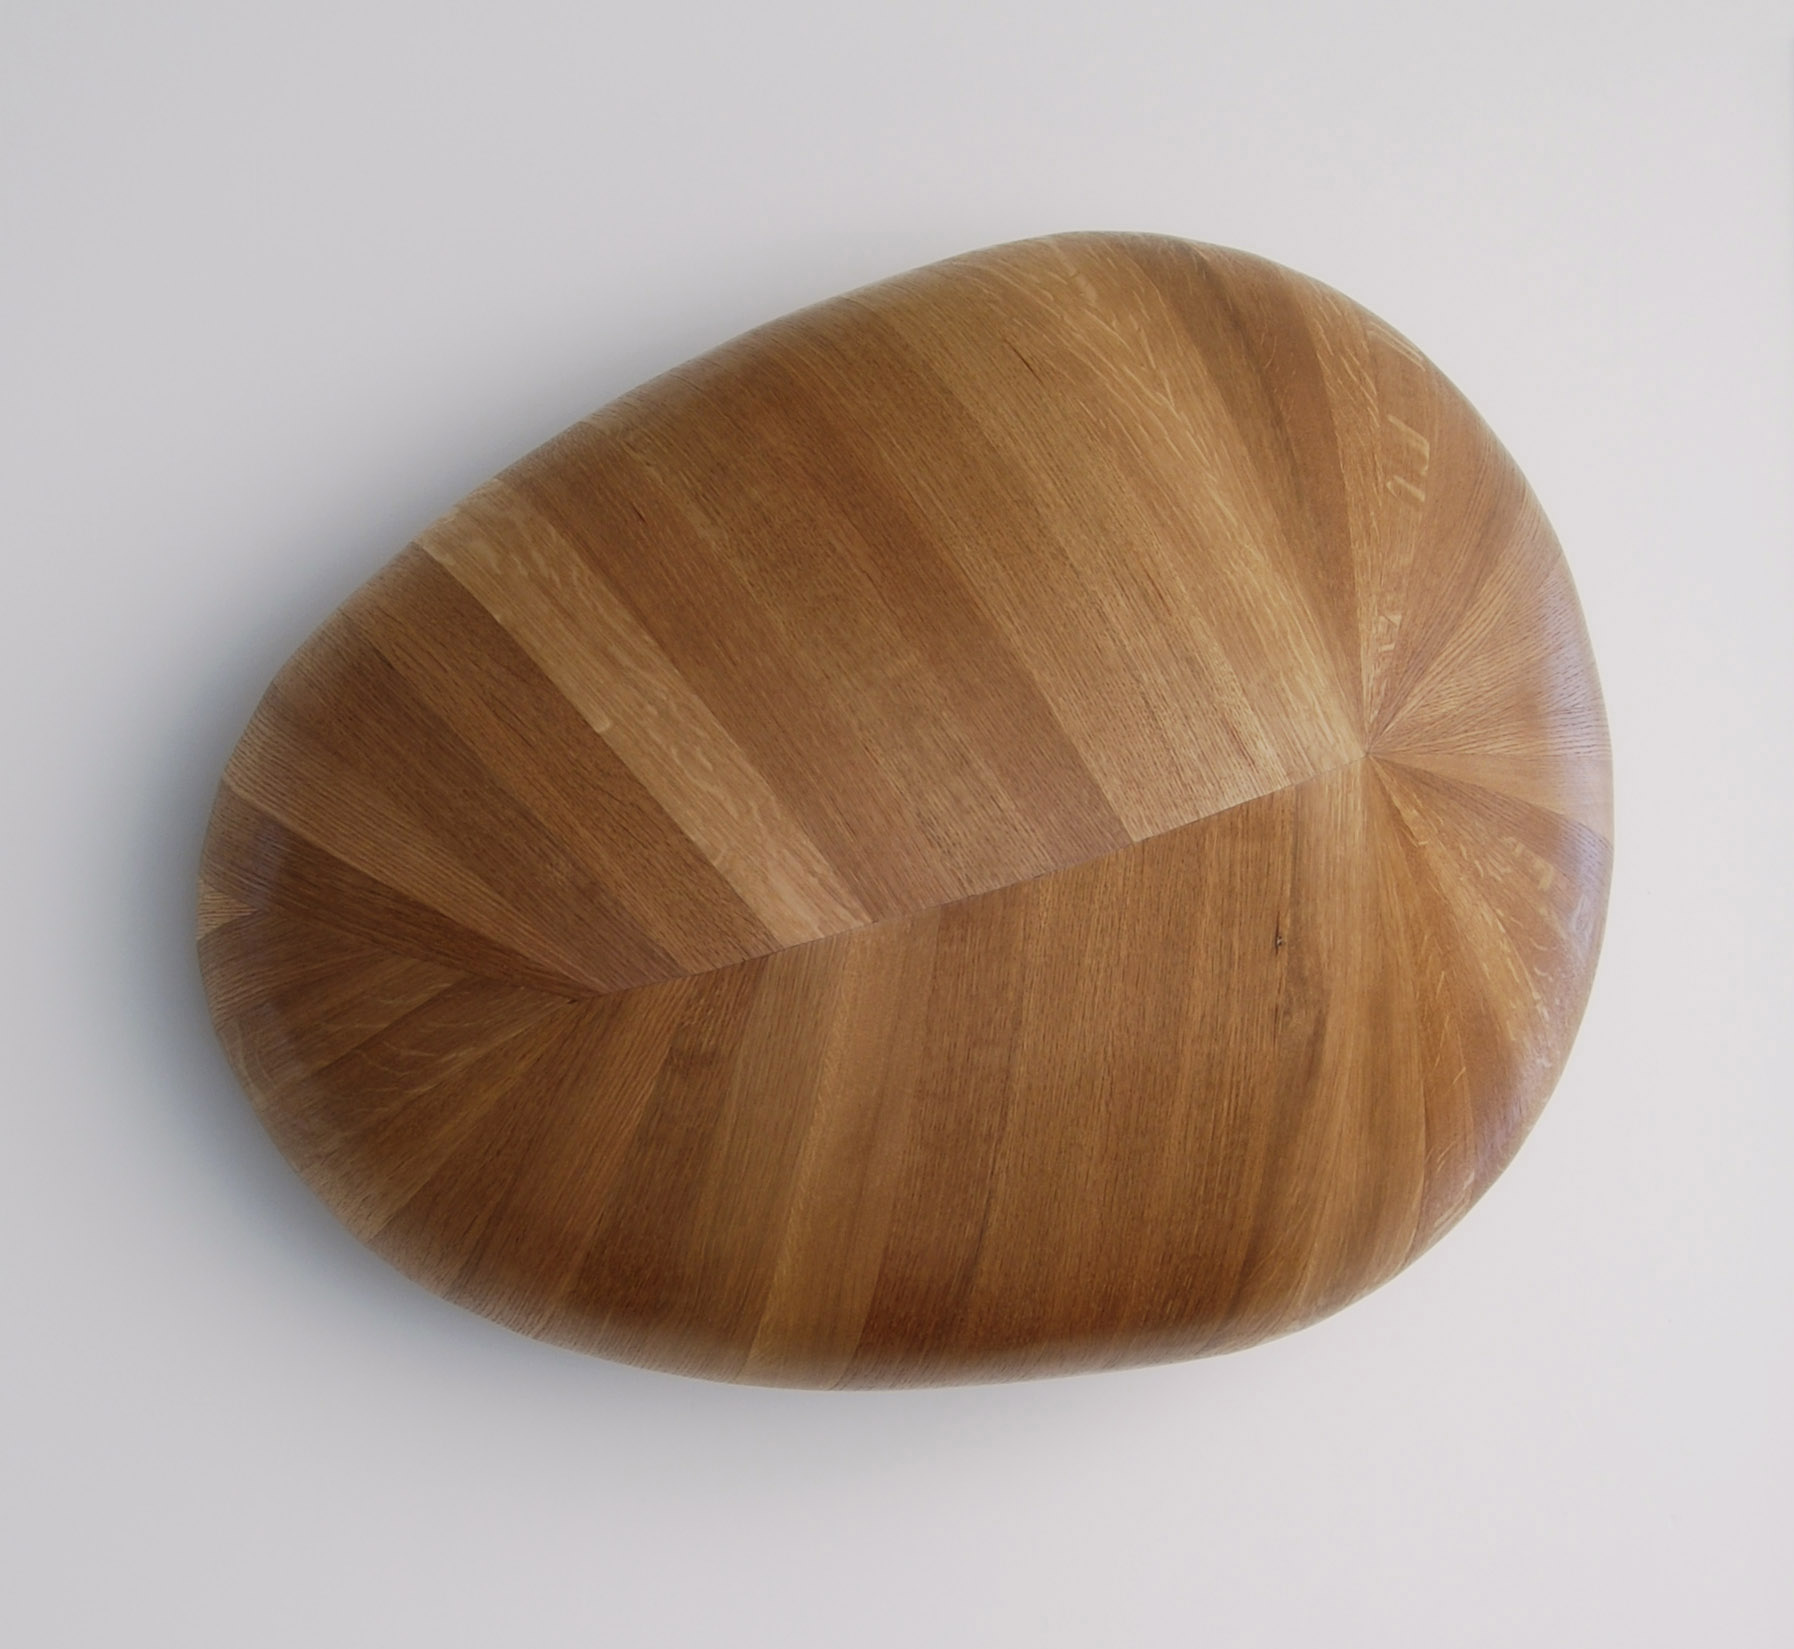 Float, 2016  31 x 41 x 16 inches  wood